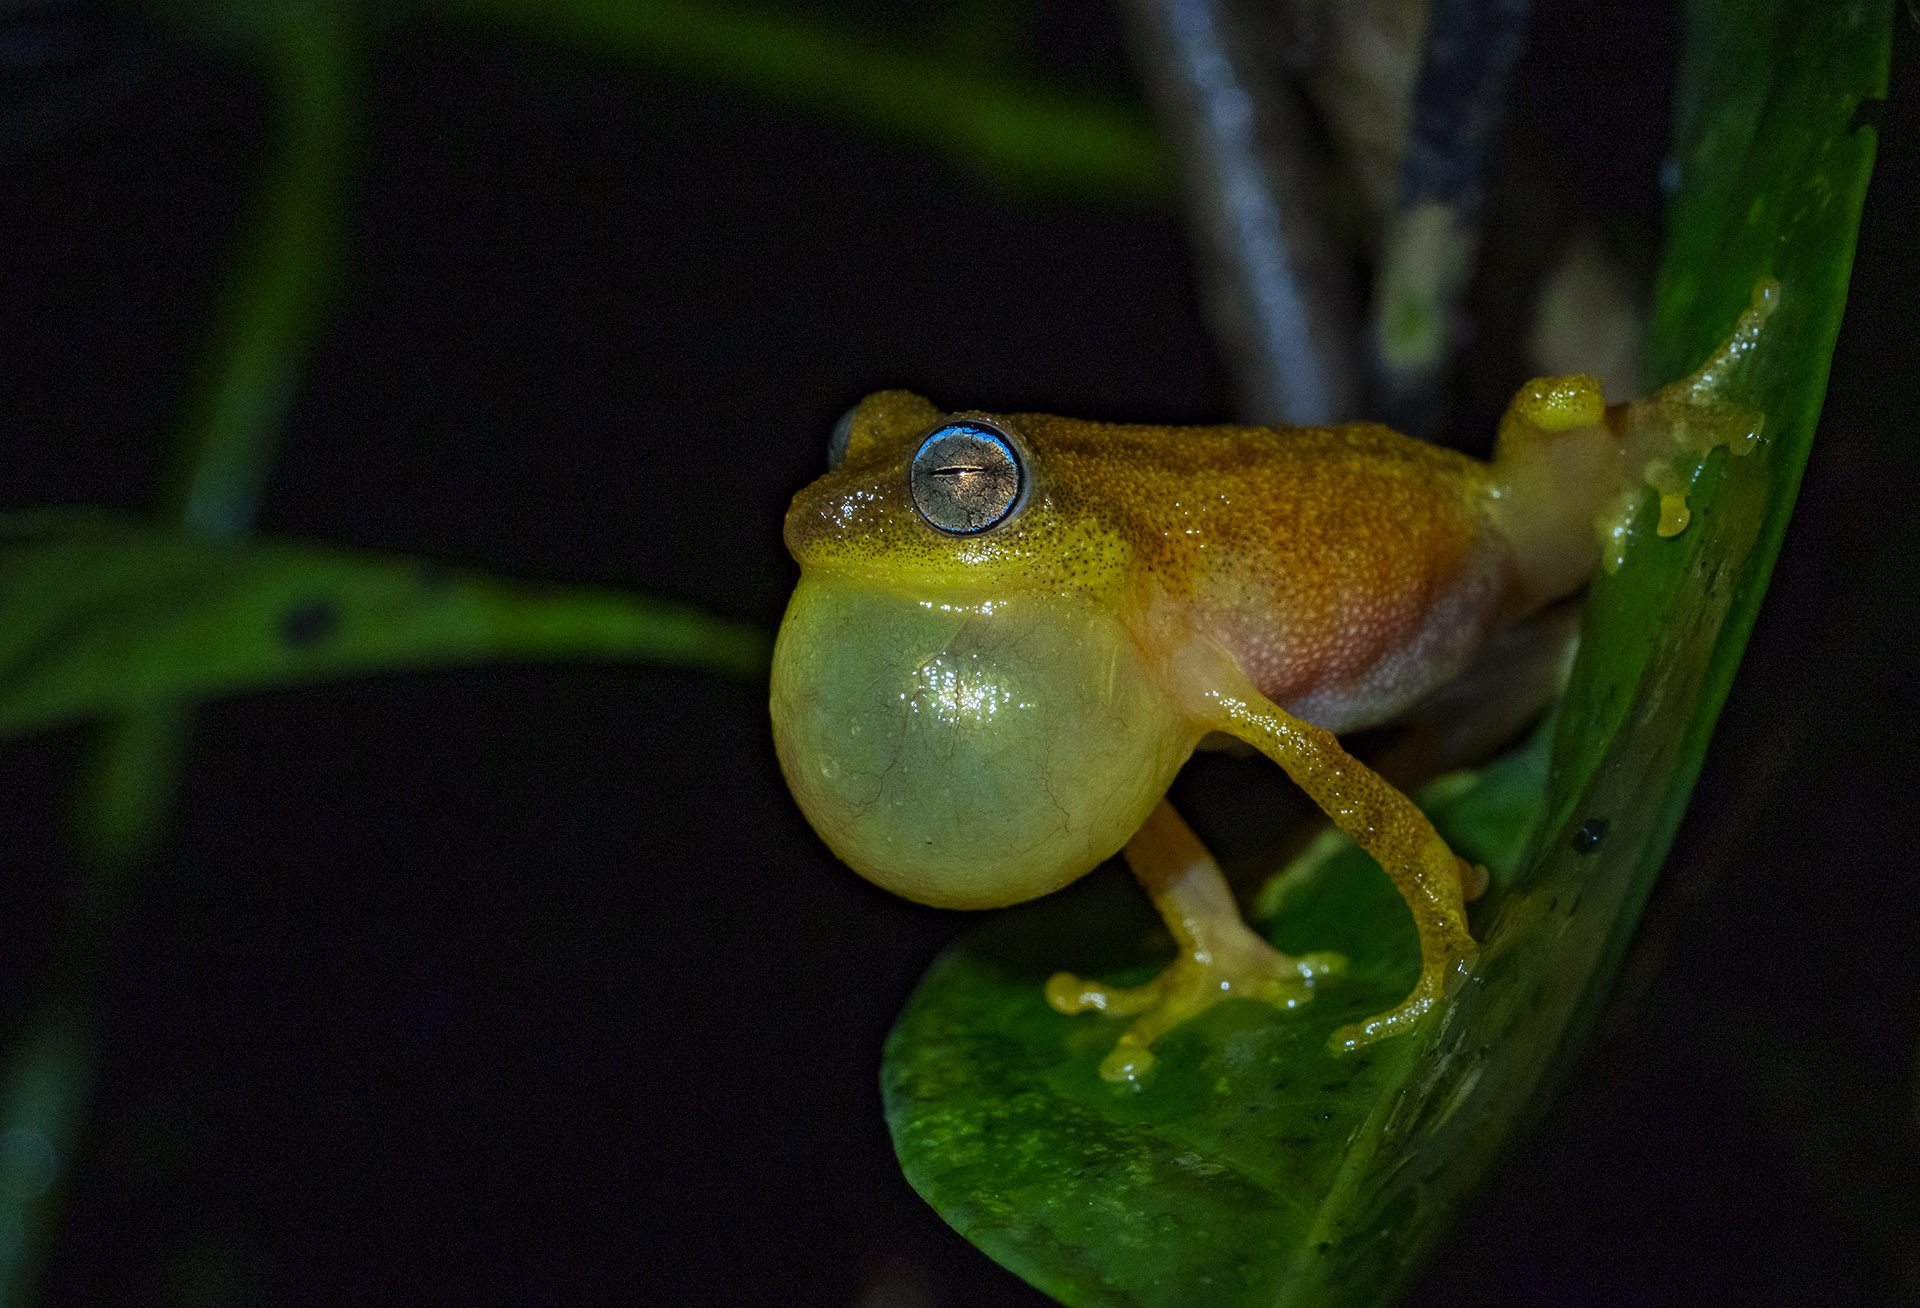 Agumbe's diverse habitat is home to over 25 species of frogs. One that's truly special is the endemic blue-eyed frog (Raorchestes luteolus) named after the bright blue rim on its eyes. Its melodious calls resonate through the rainforest.